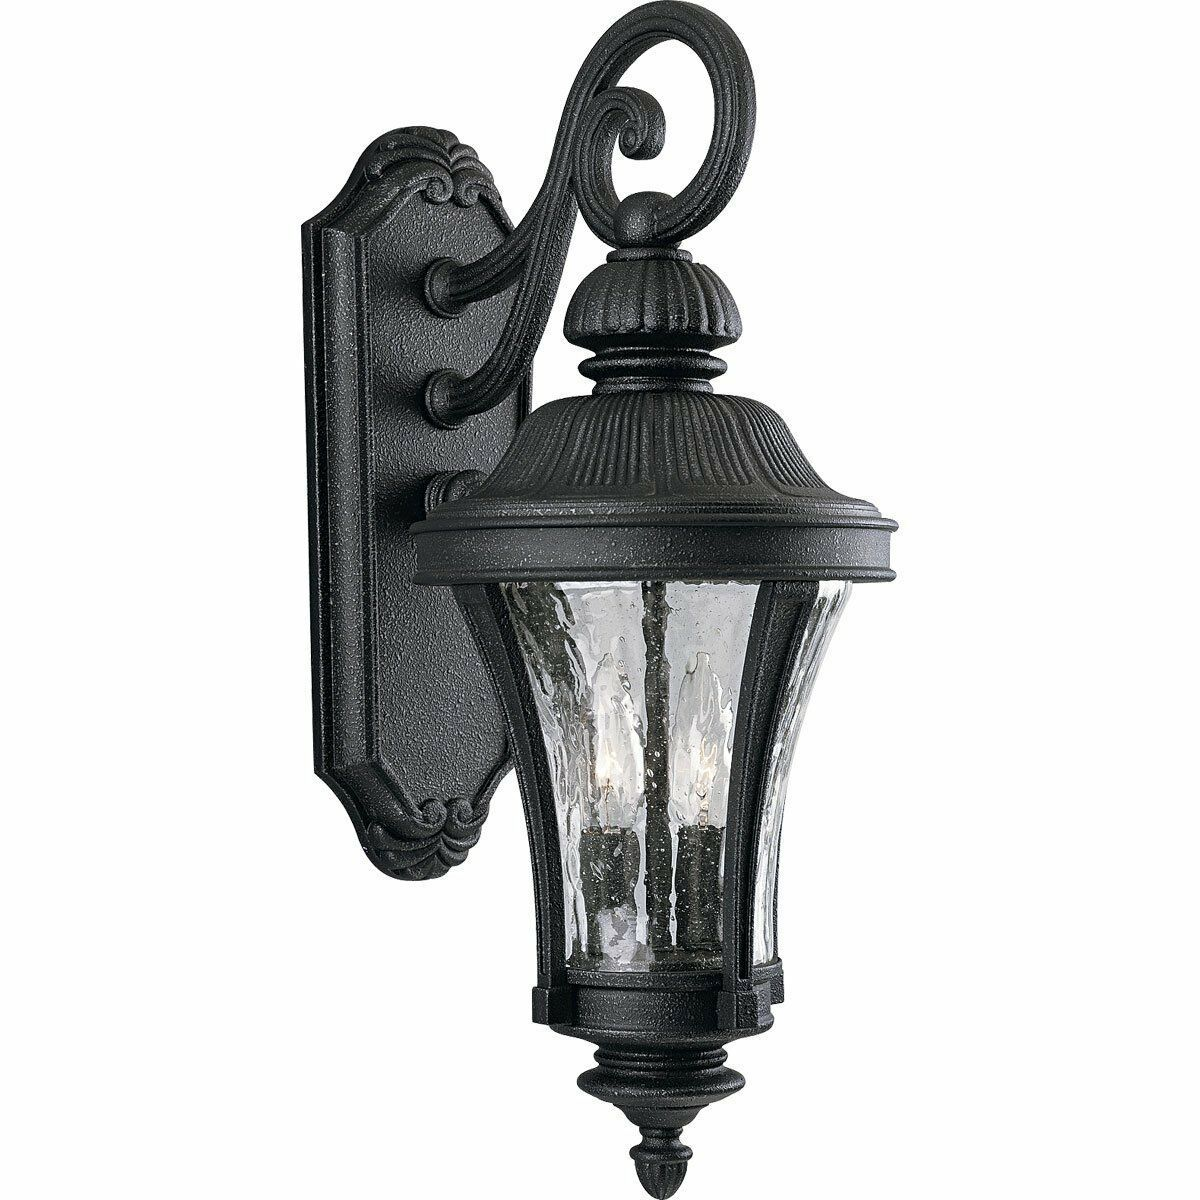 Black Gilded Iron Water Seeded Outdoor Wall Light Progress Lighting P5836-71